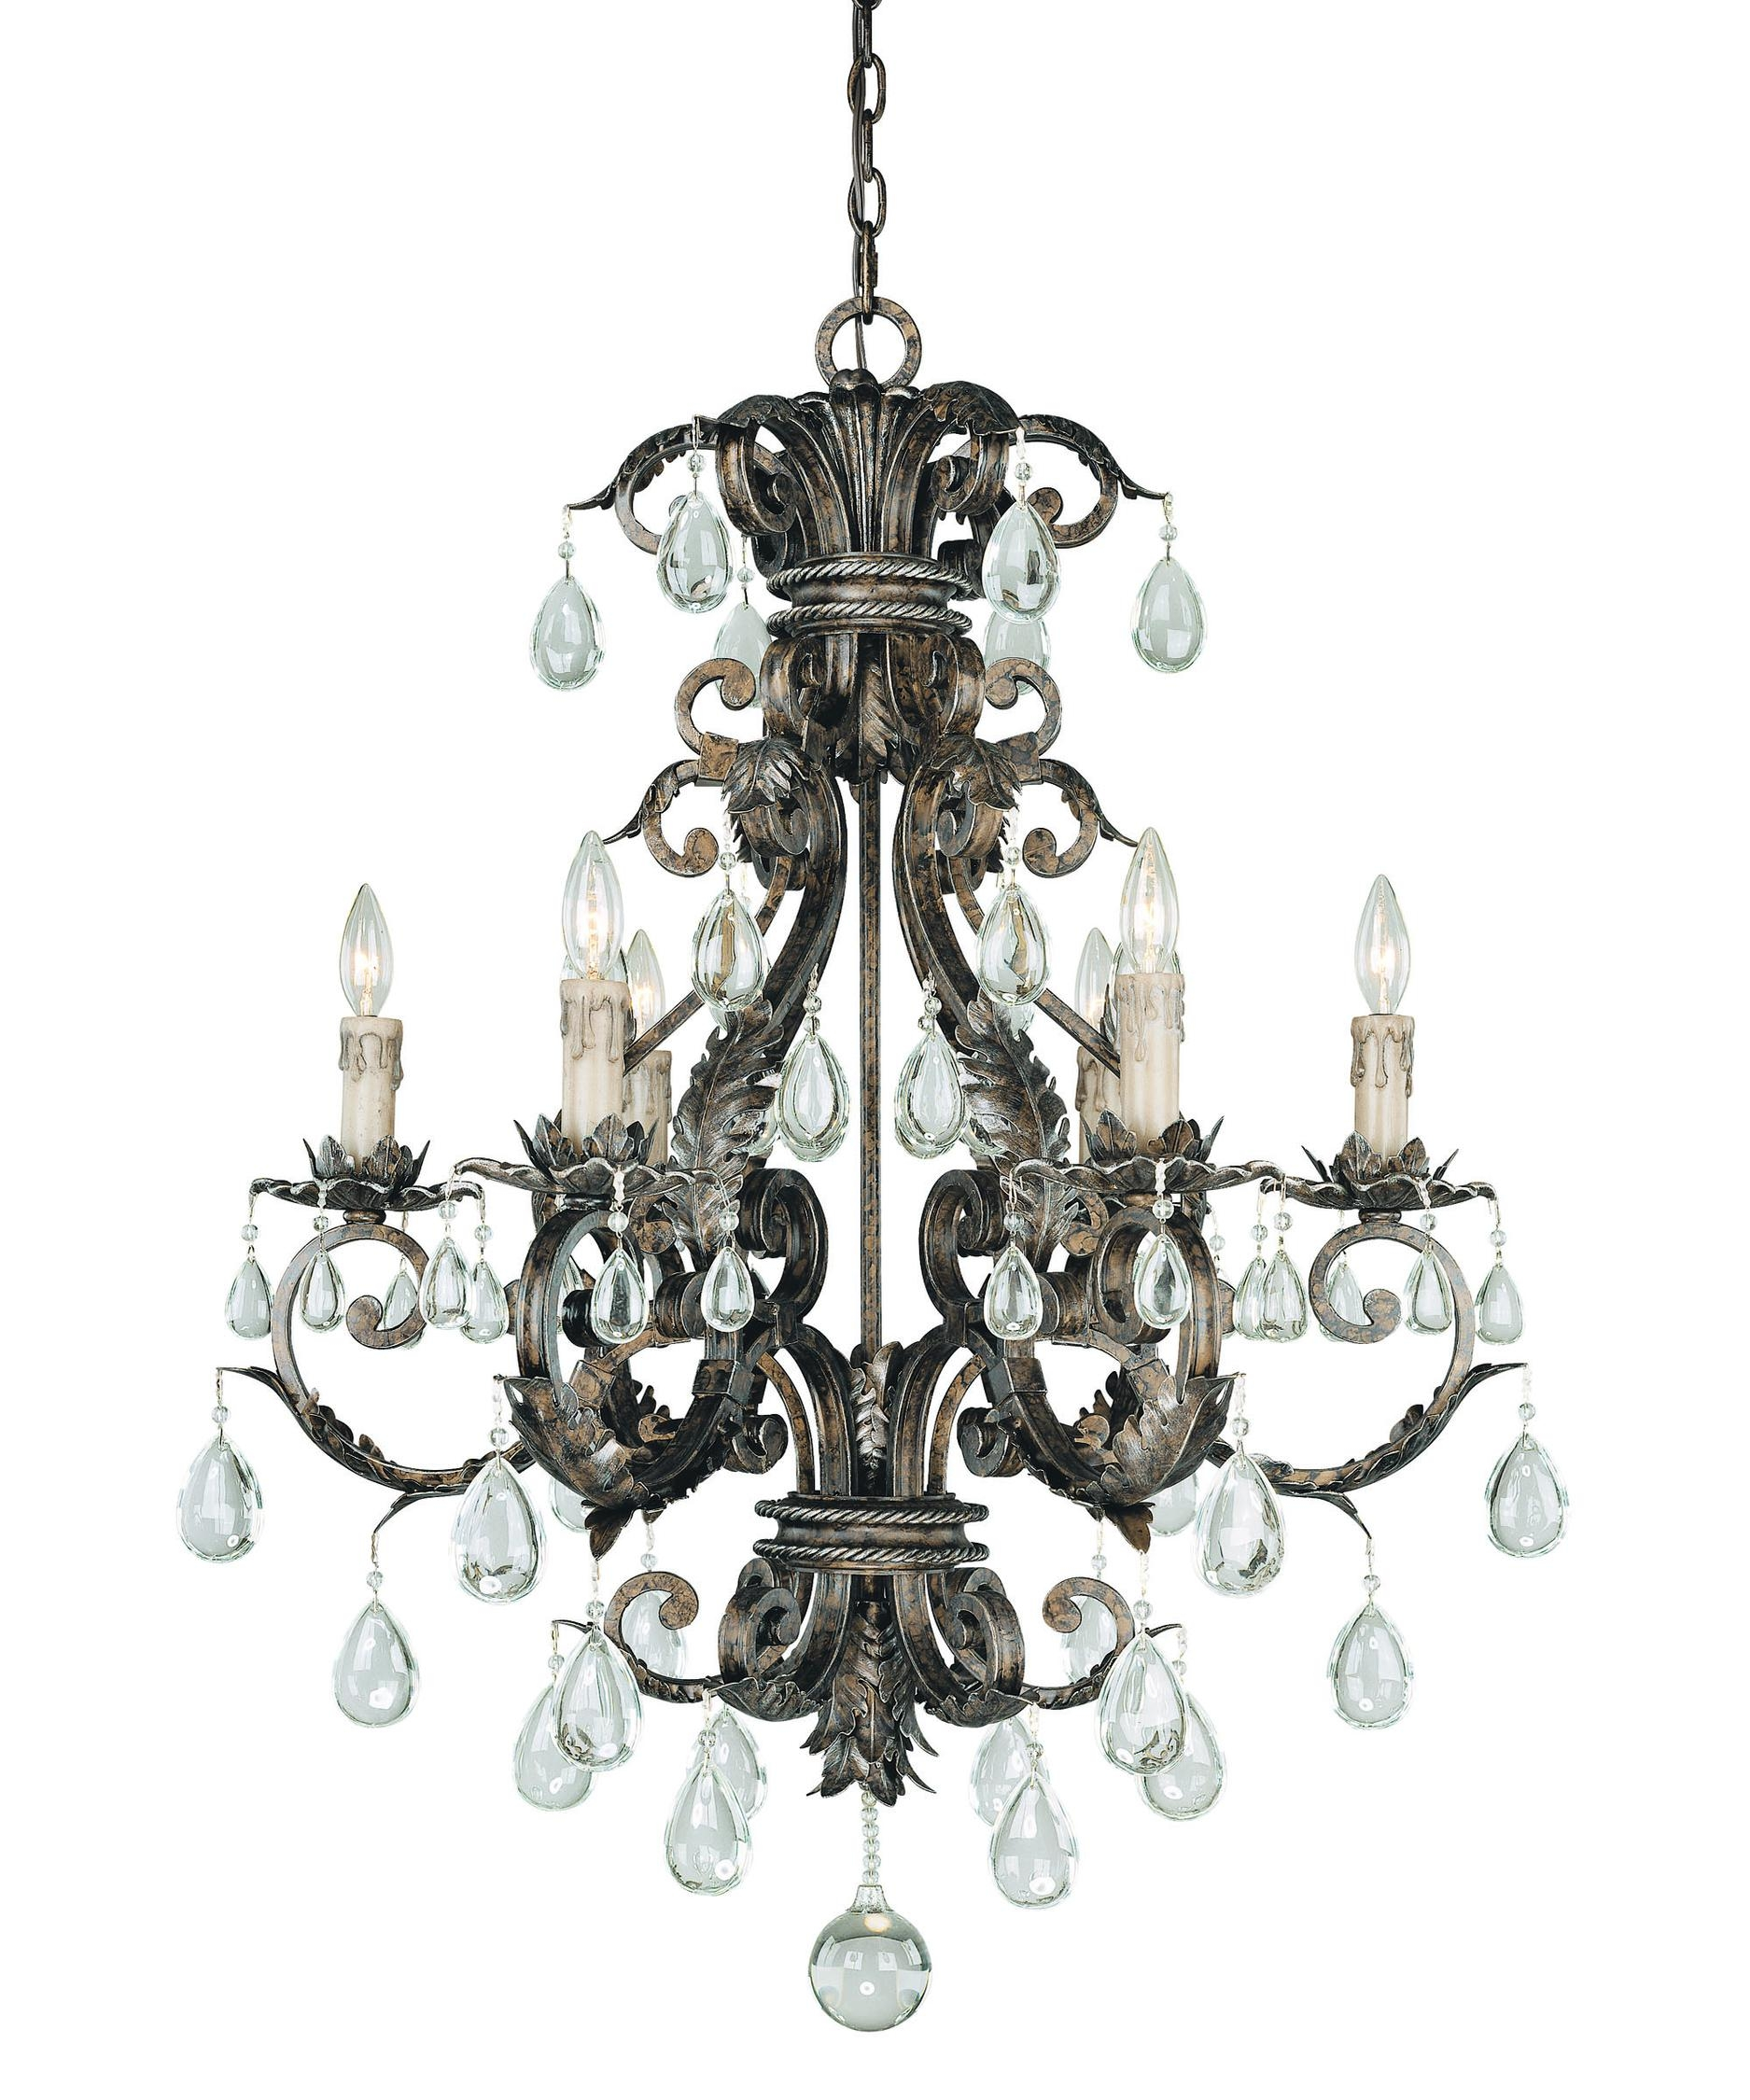 Savoy House 1 5306 6 8 Chastain 29 Inch Wide 6 Light Chandelier With Regard To Savoy House Chandeliers (Image 18 of 25)